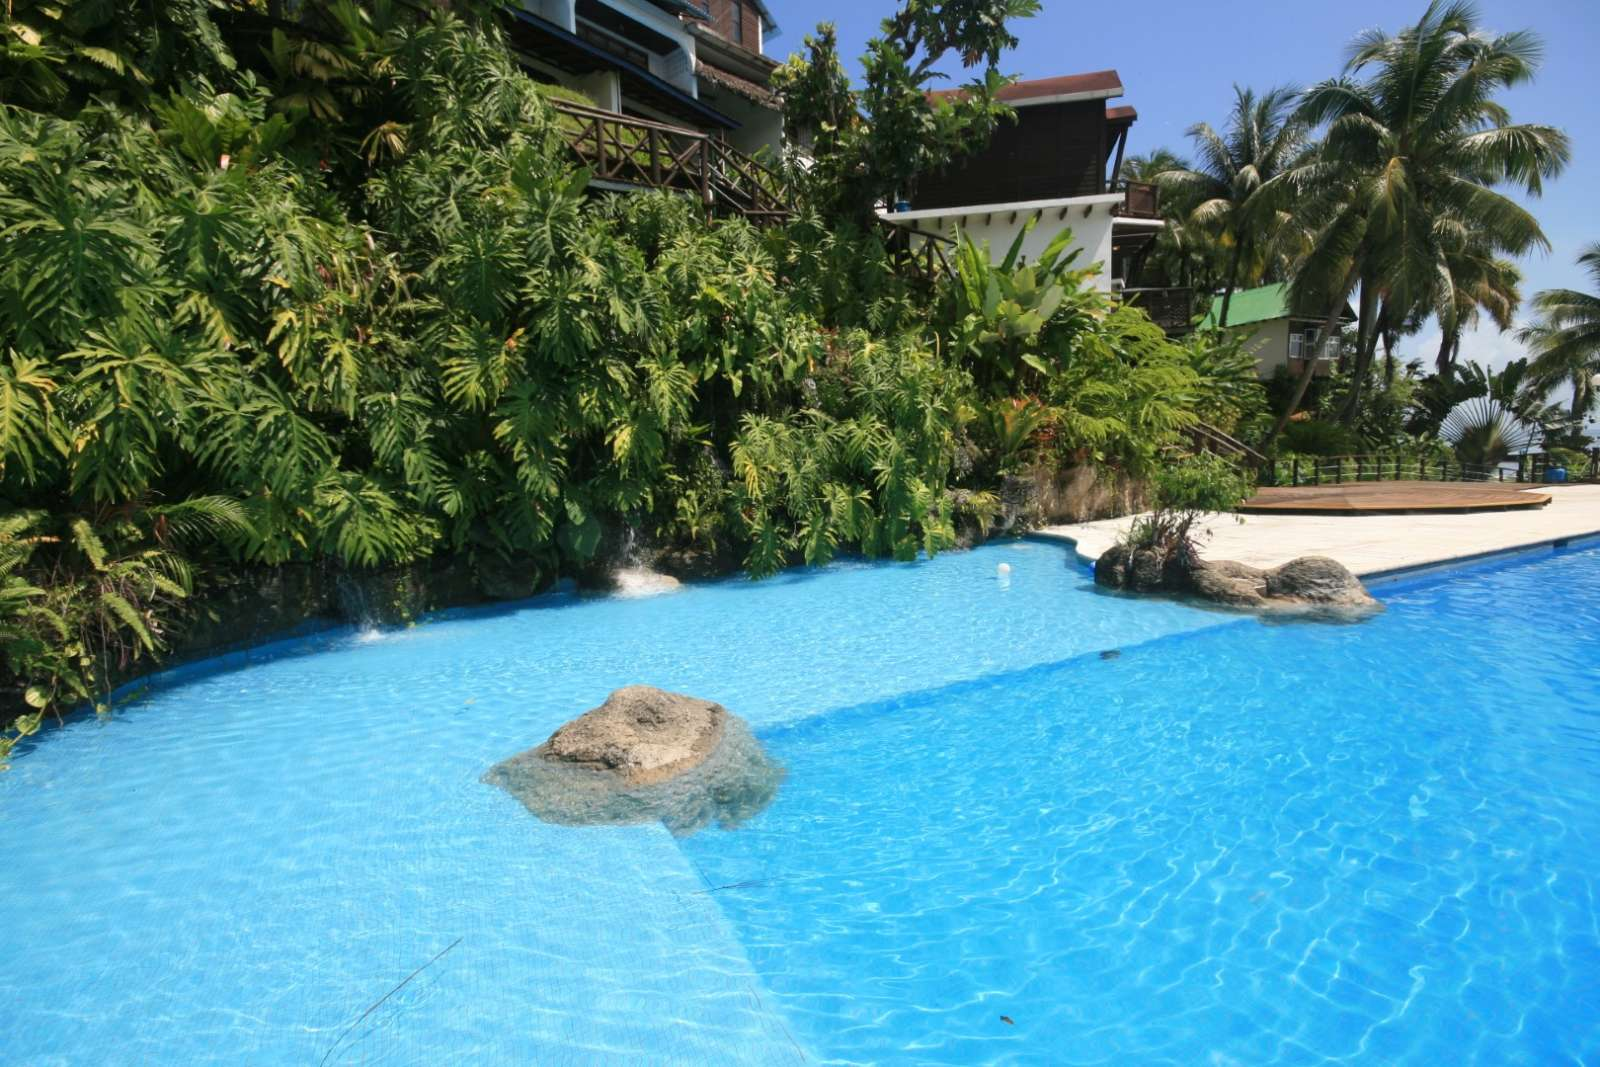 Swimming pool at Villa Caribe in Livingston, Guatemala